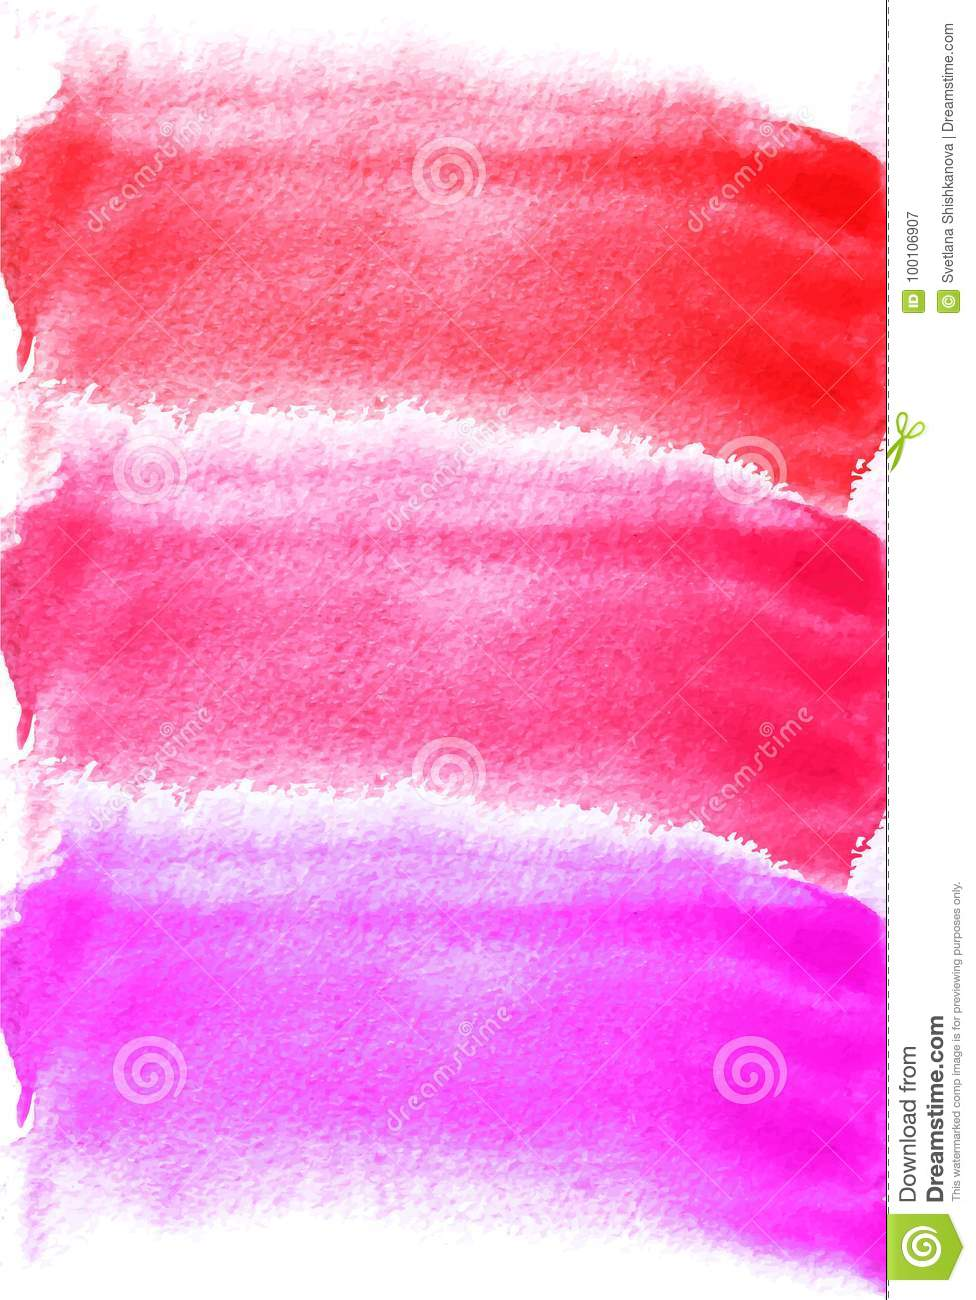 Card with watercolor blots. Purple, pink, red colors. Painting for your design. Abstract bright textured backdrop. Vector